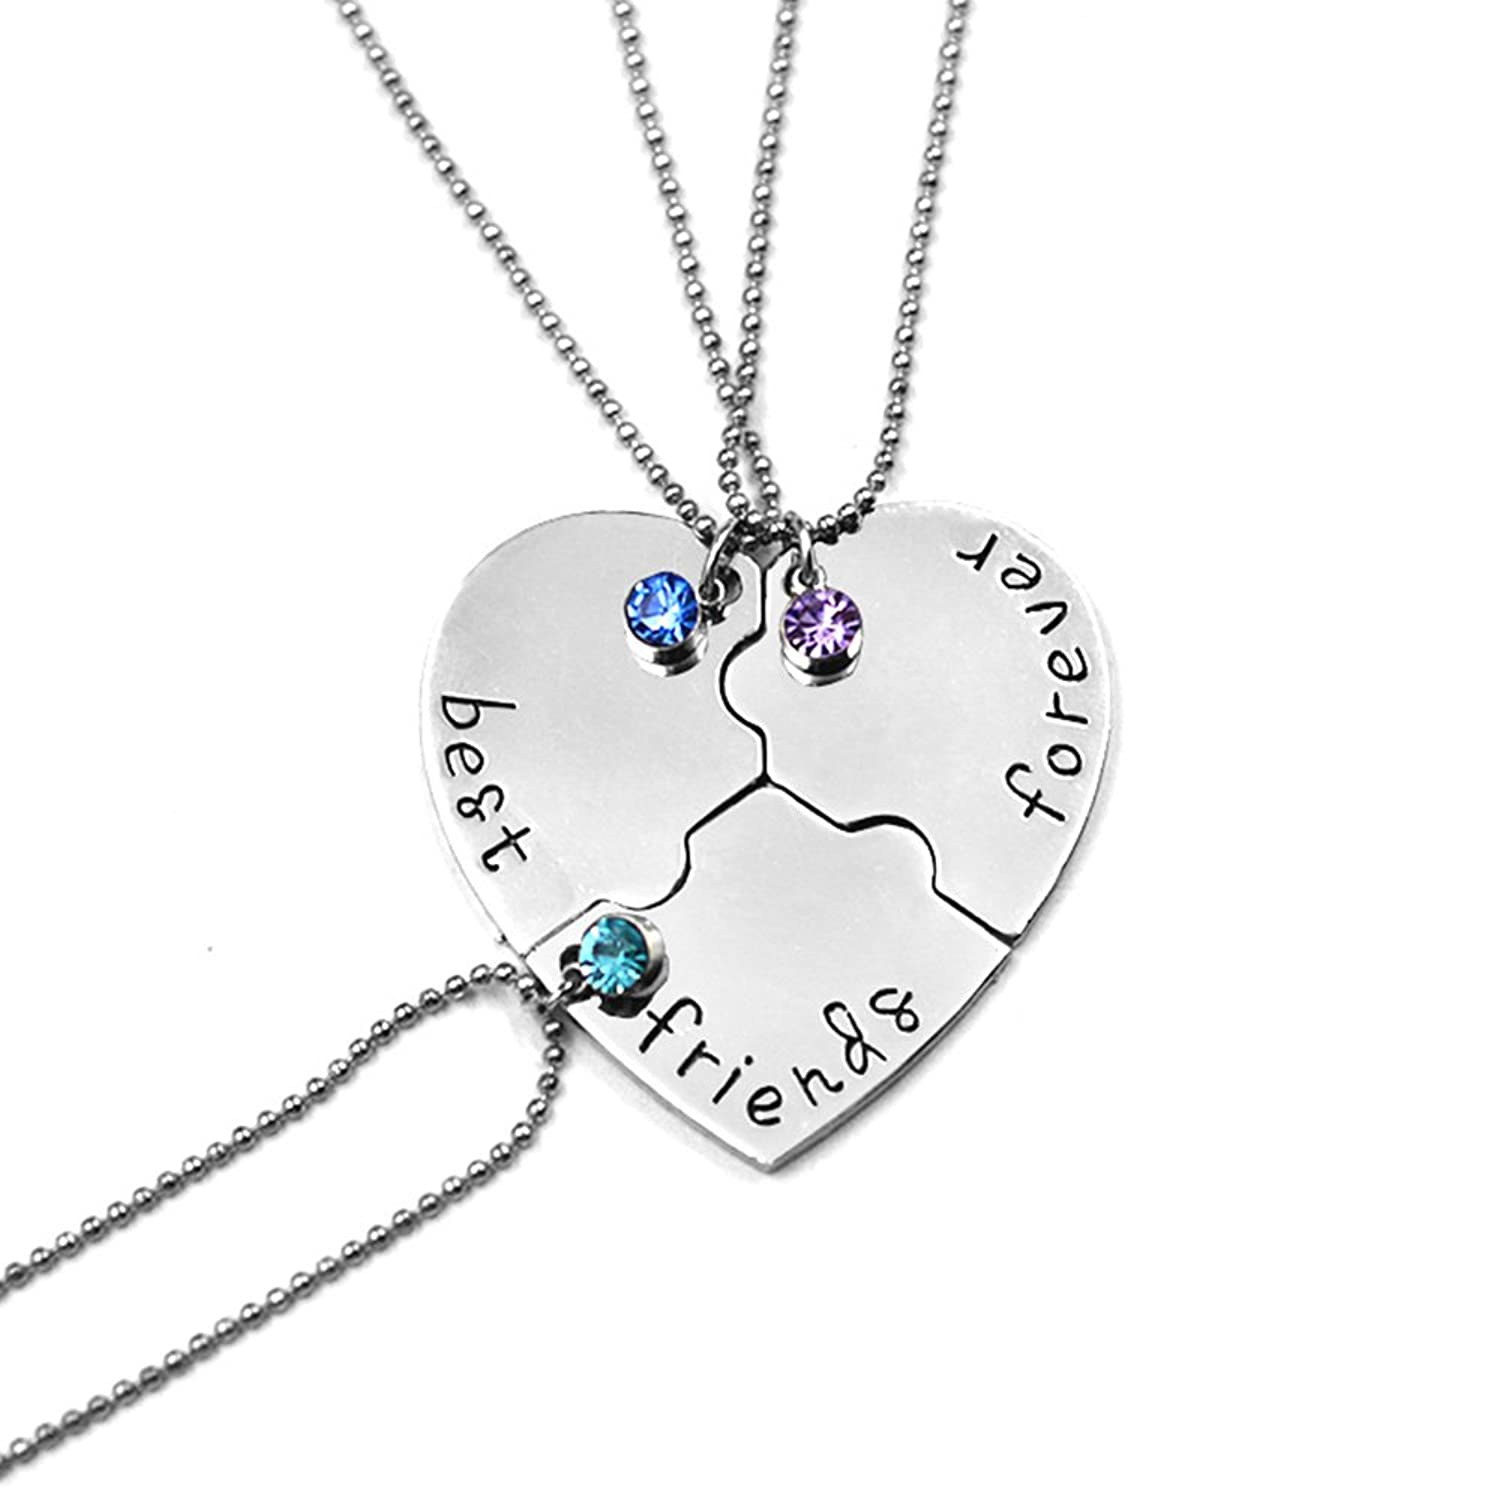 jewellery co original online necklace buy puzzle q c from fishpond nz